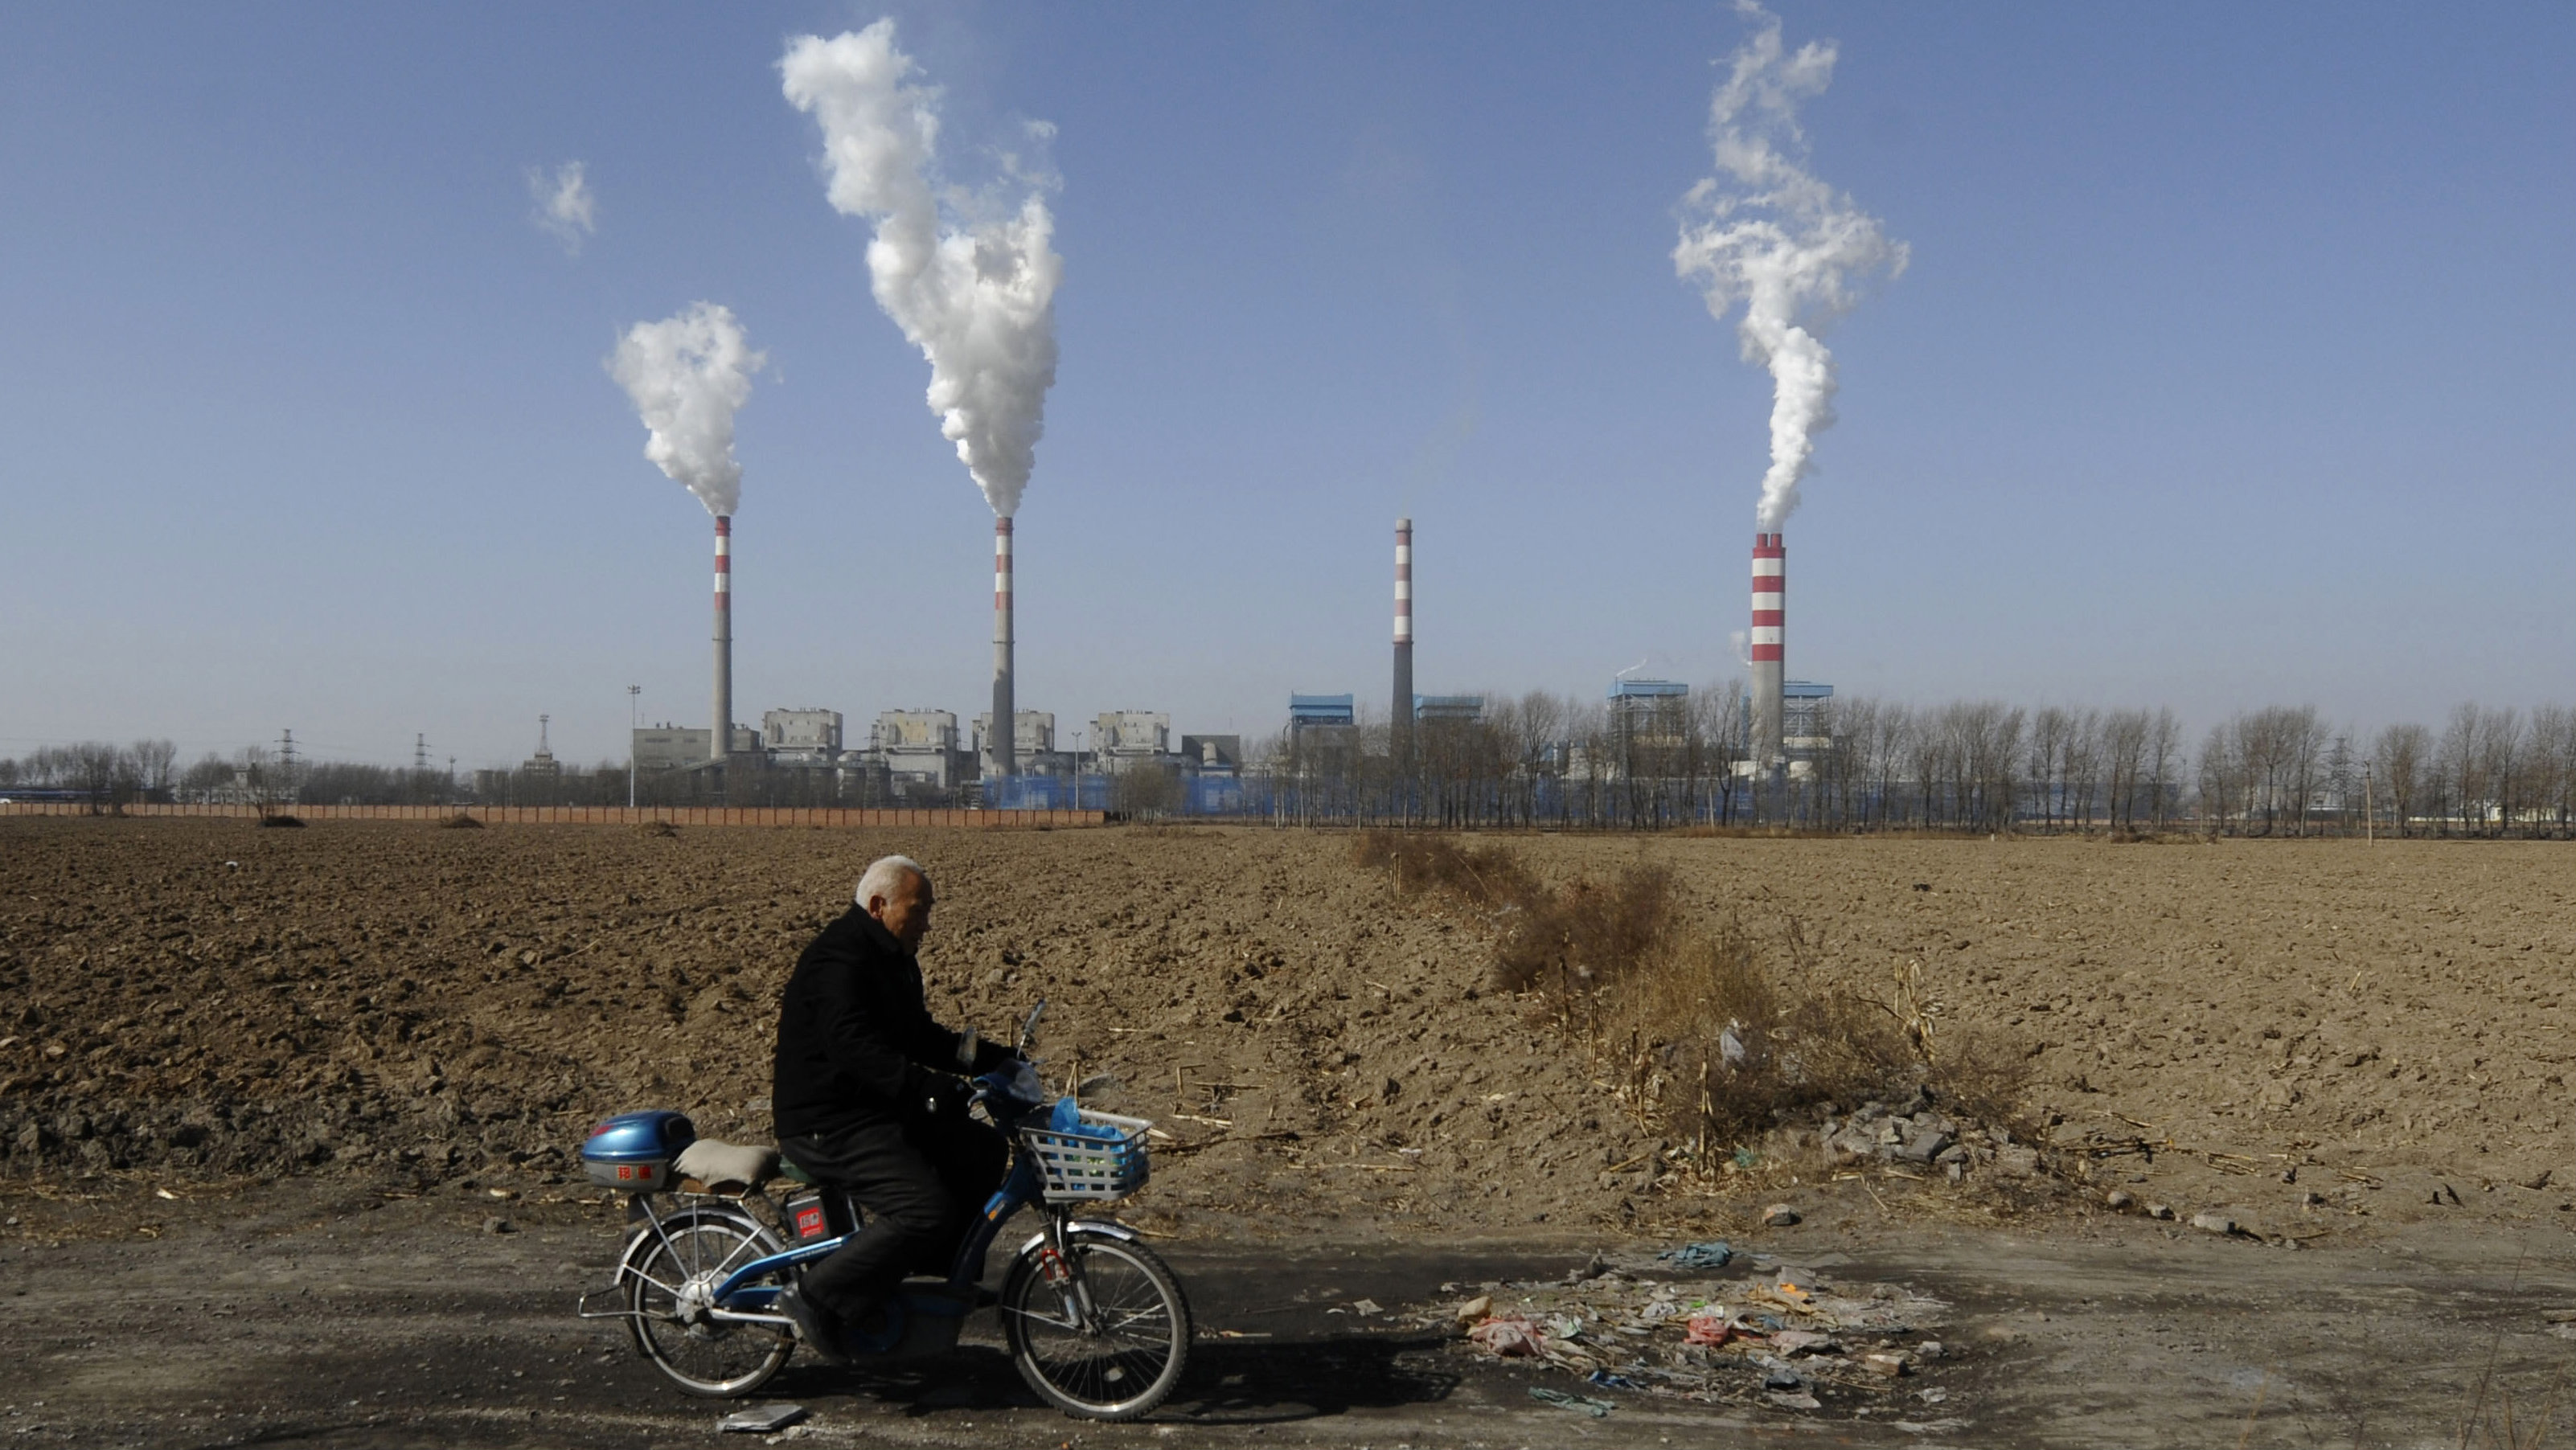 A man rides on a road near a power plant on the outskirts of Changzhi, Shanxi province February 20, 2009. The global financial crisis will not affect China's resolve to tackle global warming, the Foreign Ministry said on Thursday, ahead of a visit to Beijing by U.S. Secretary of State Hillary Clinton.